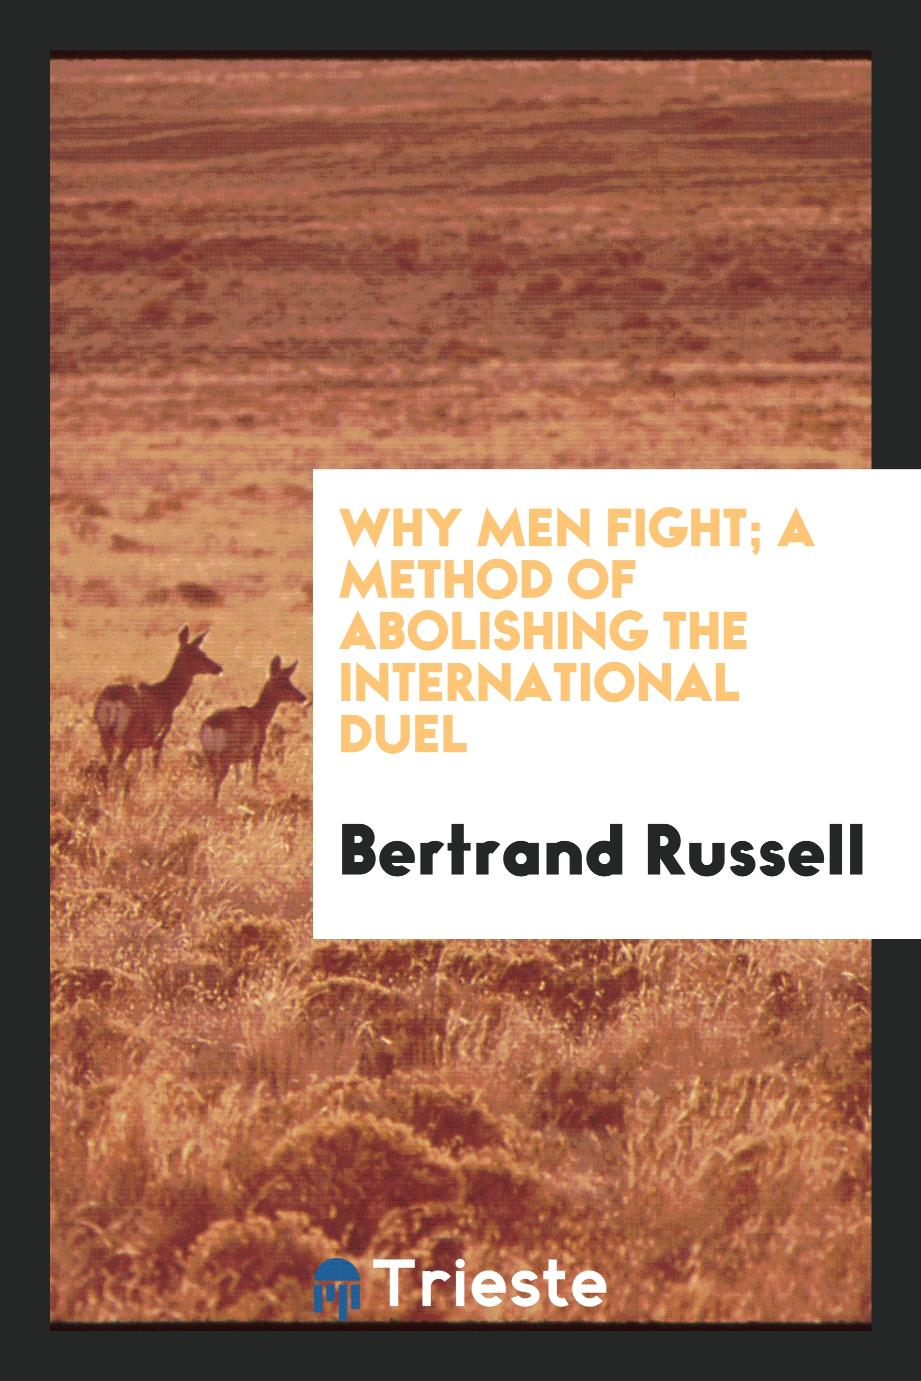 Why men fight; a method of abolishing the international duel